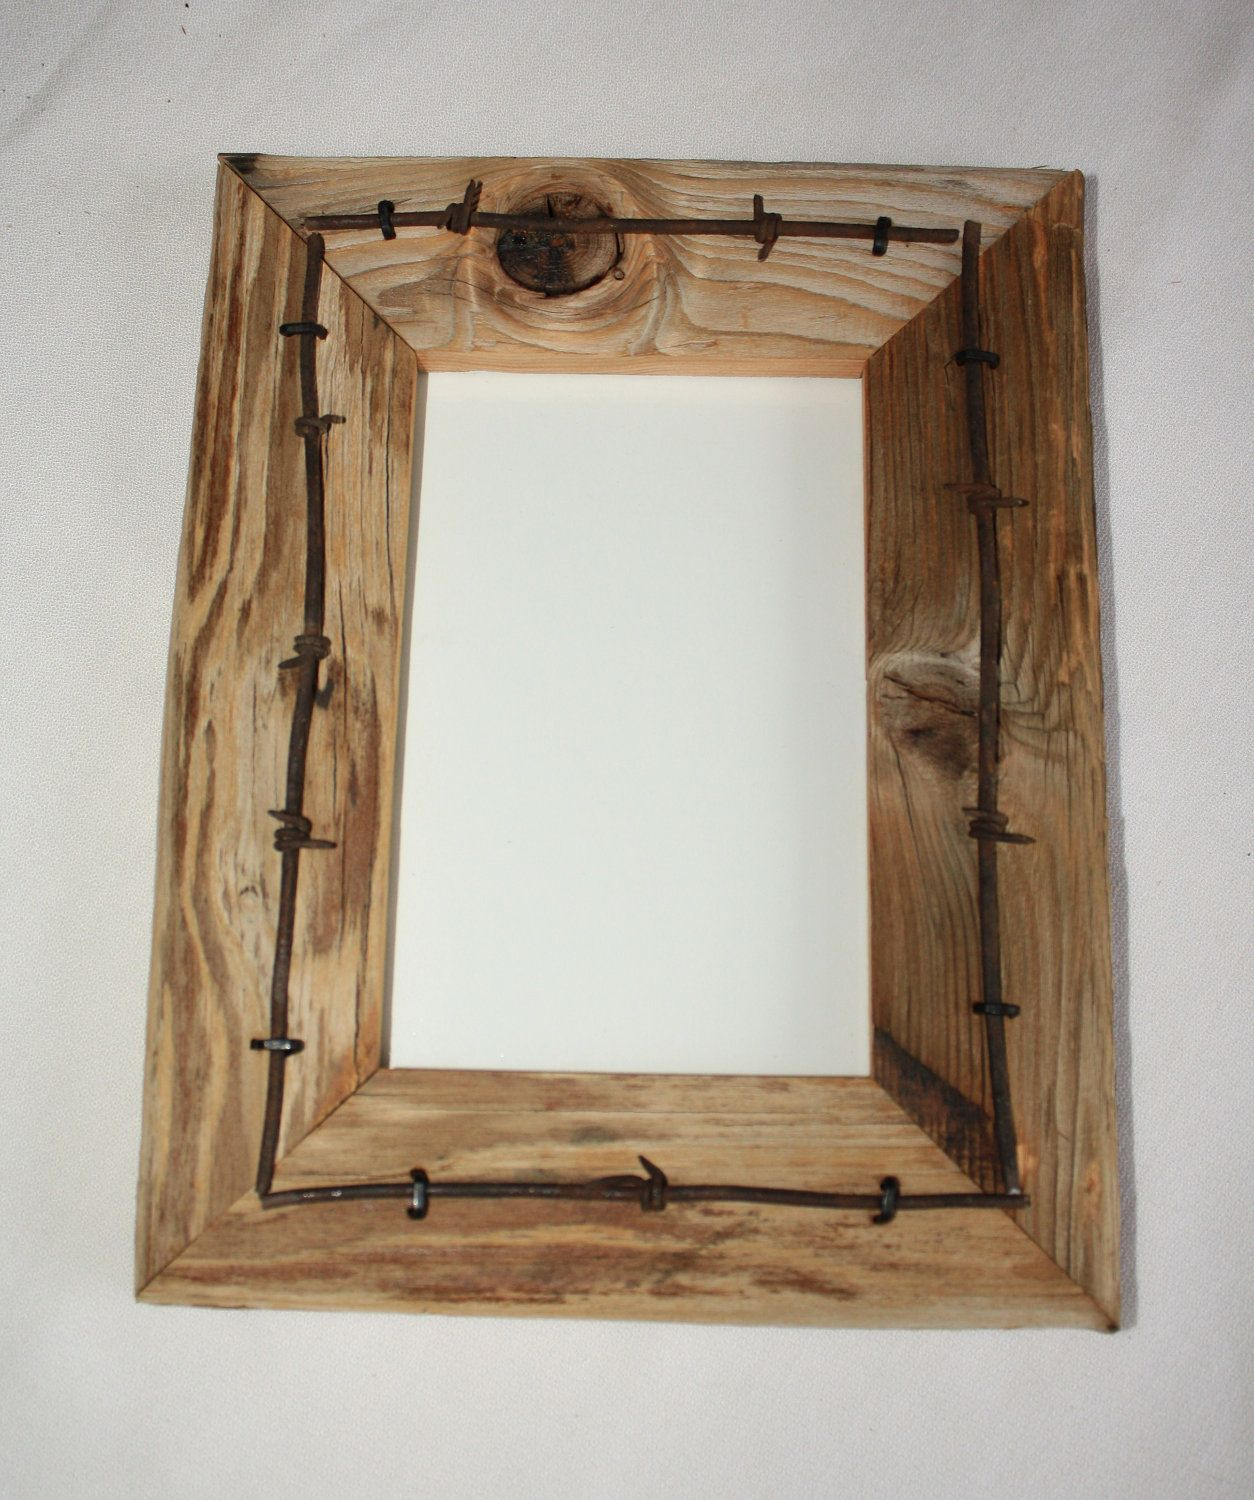 Reclaimed Wood Picture Frame - 4 x 6 - Vintage Telegraph Pole Cross ...